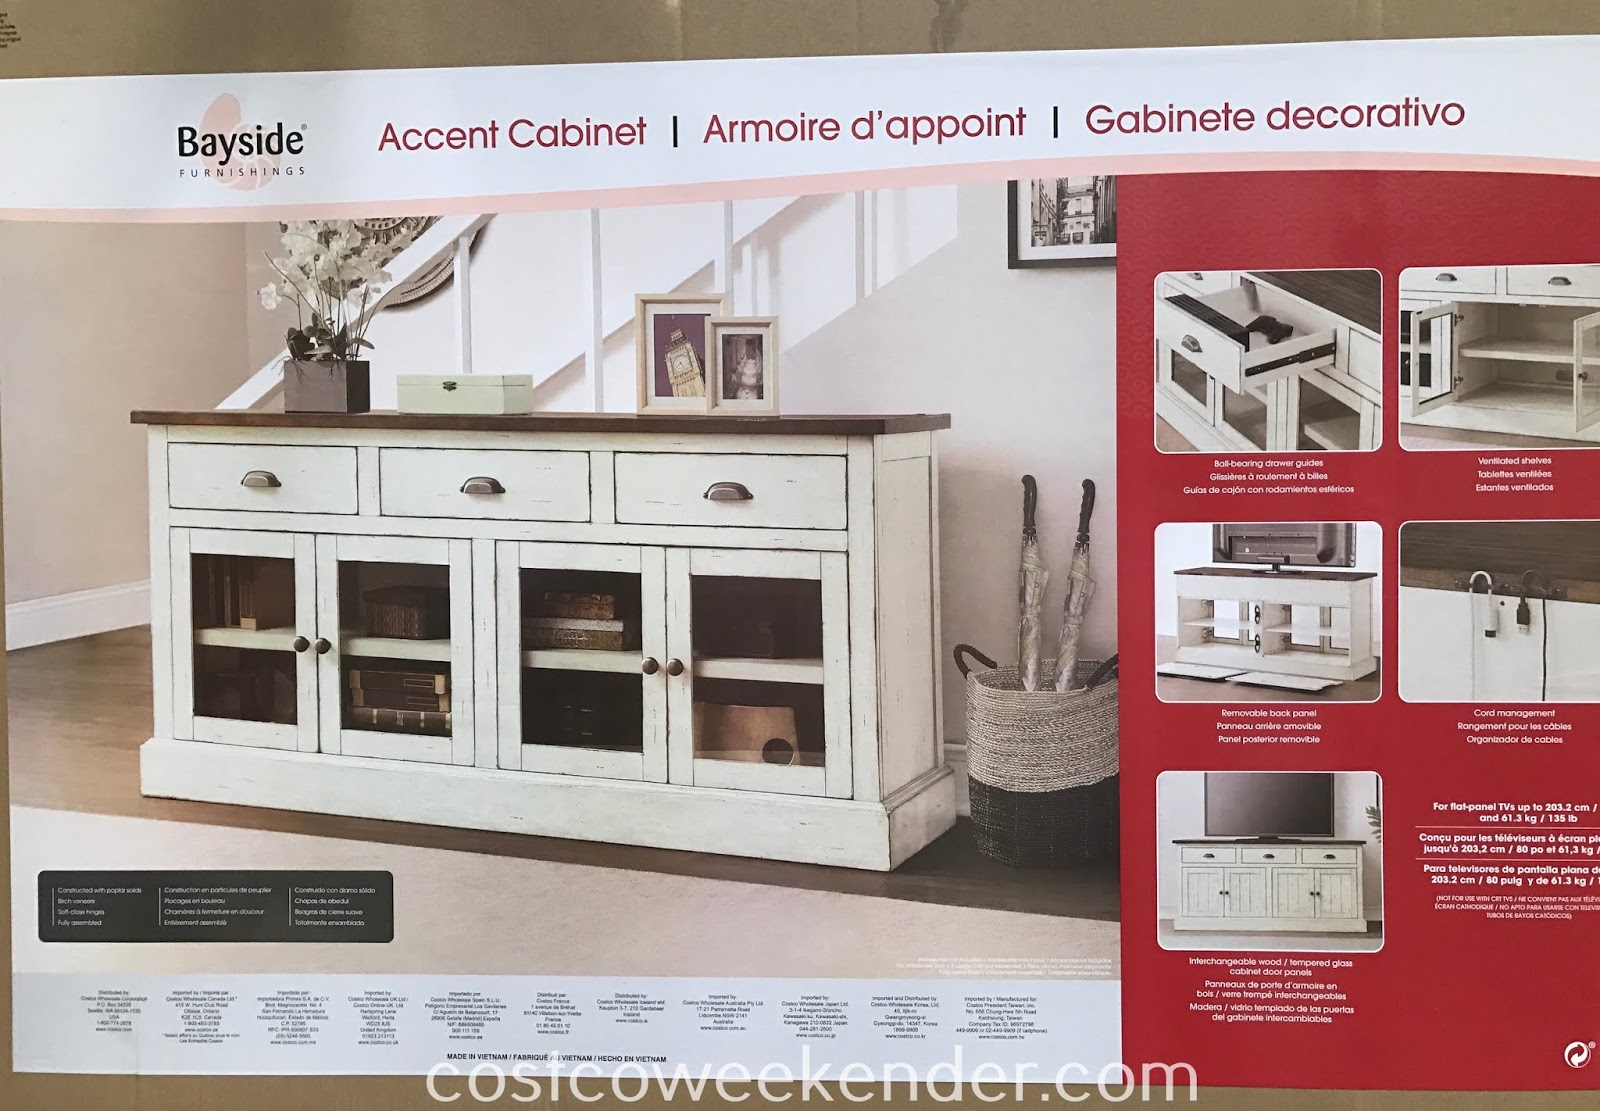 Costco 2000875 - Bayside Furnishings Accent Cabinet: great for any home